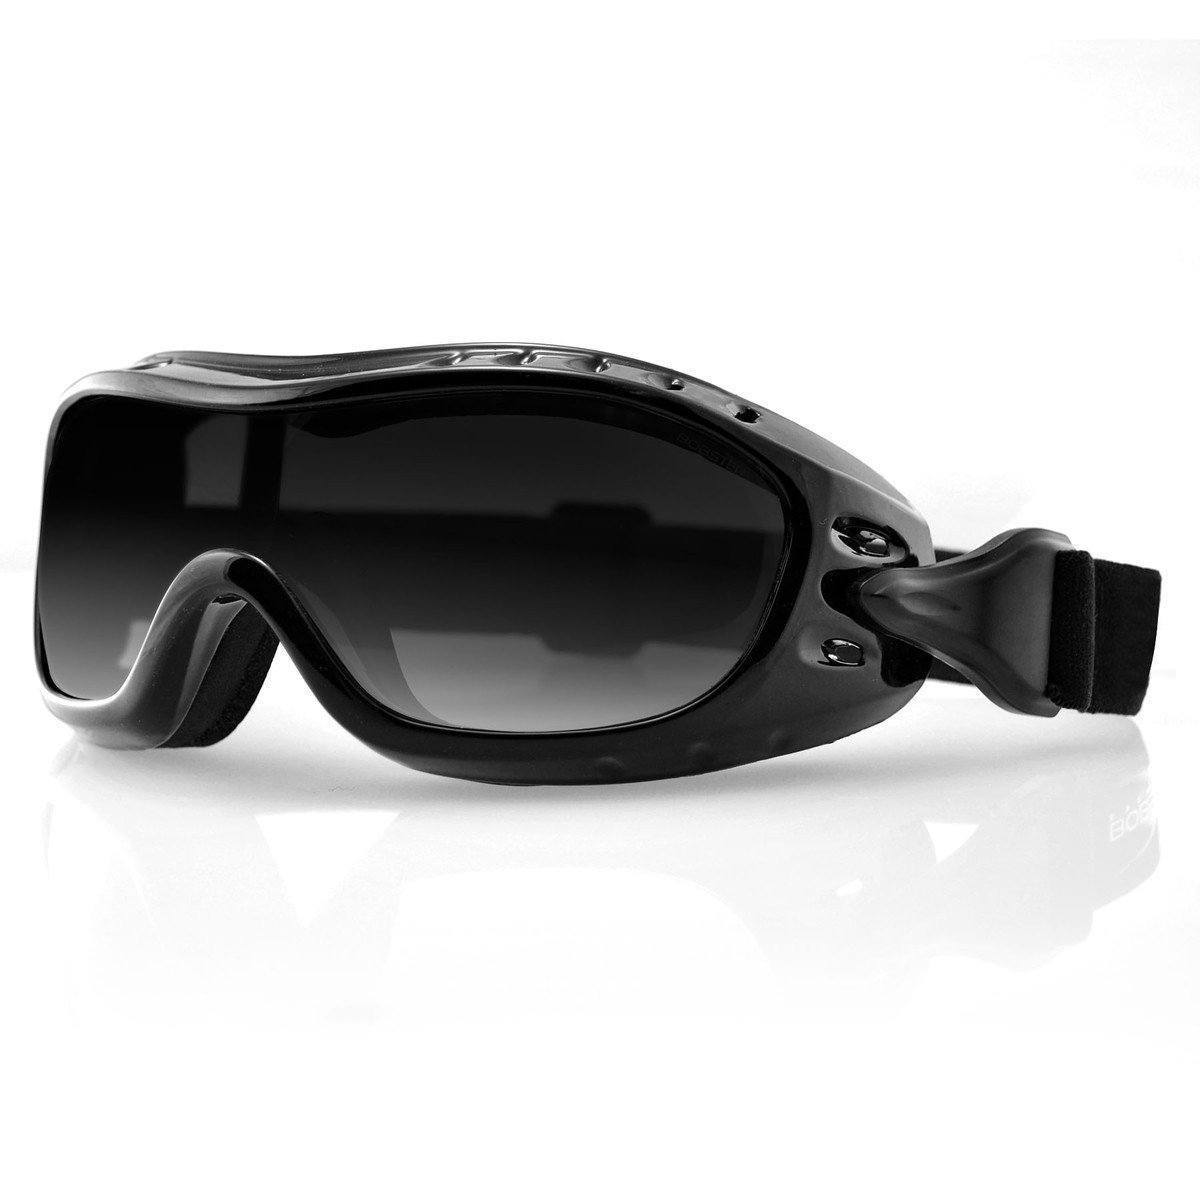 Bobster Night Hawk Smoke Lens Goggles